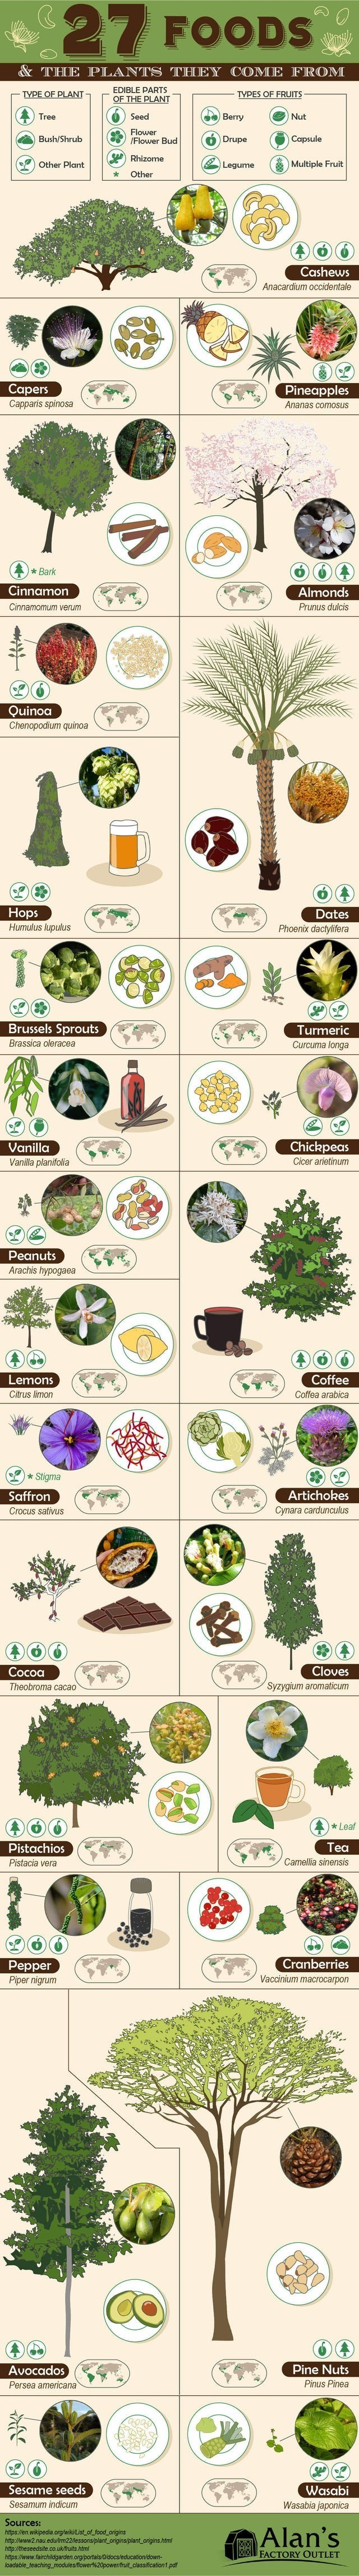 list of the daily top guides infographics | 27 FOODS PLANTS THEY COME EDIBLE PARTS PLANT TYPE PLANT TYPES FRUITS Tree Seed Berry Nut Flower /Flower Bud 6 Drupe Capsule Bush/Shrub Rhizome Legume Multiple Fruit Other Plant Other Cashews Anacardium occidentale Capers Capparis spinosa Pineapples Ananas comosus Bark Cinnamon Almonds Cinnamomum verum Prunus dulcis Quinoa Chenopodium quinoa ps Humulus lupulus Dates Phoenix dactylifera Brussels Sprouts Turmeric Brassica oleracea Curcuma longa Chickpeas